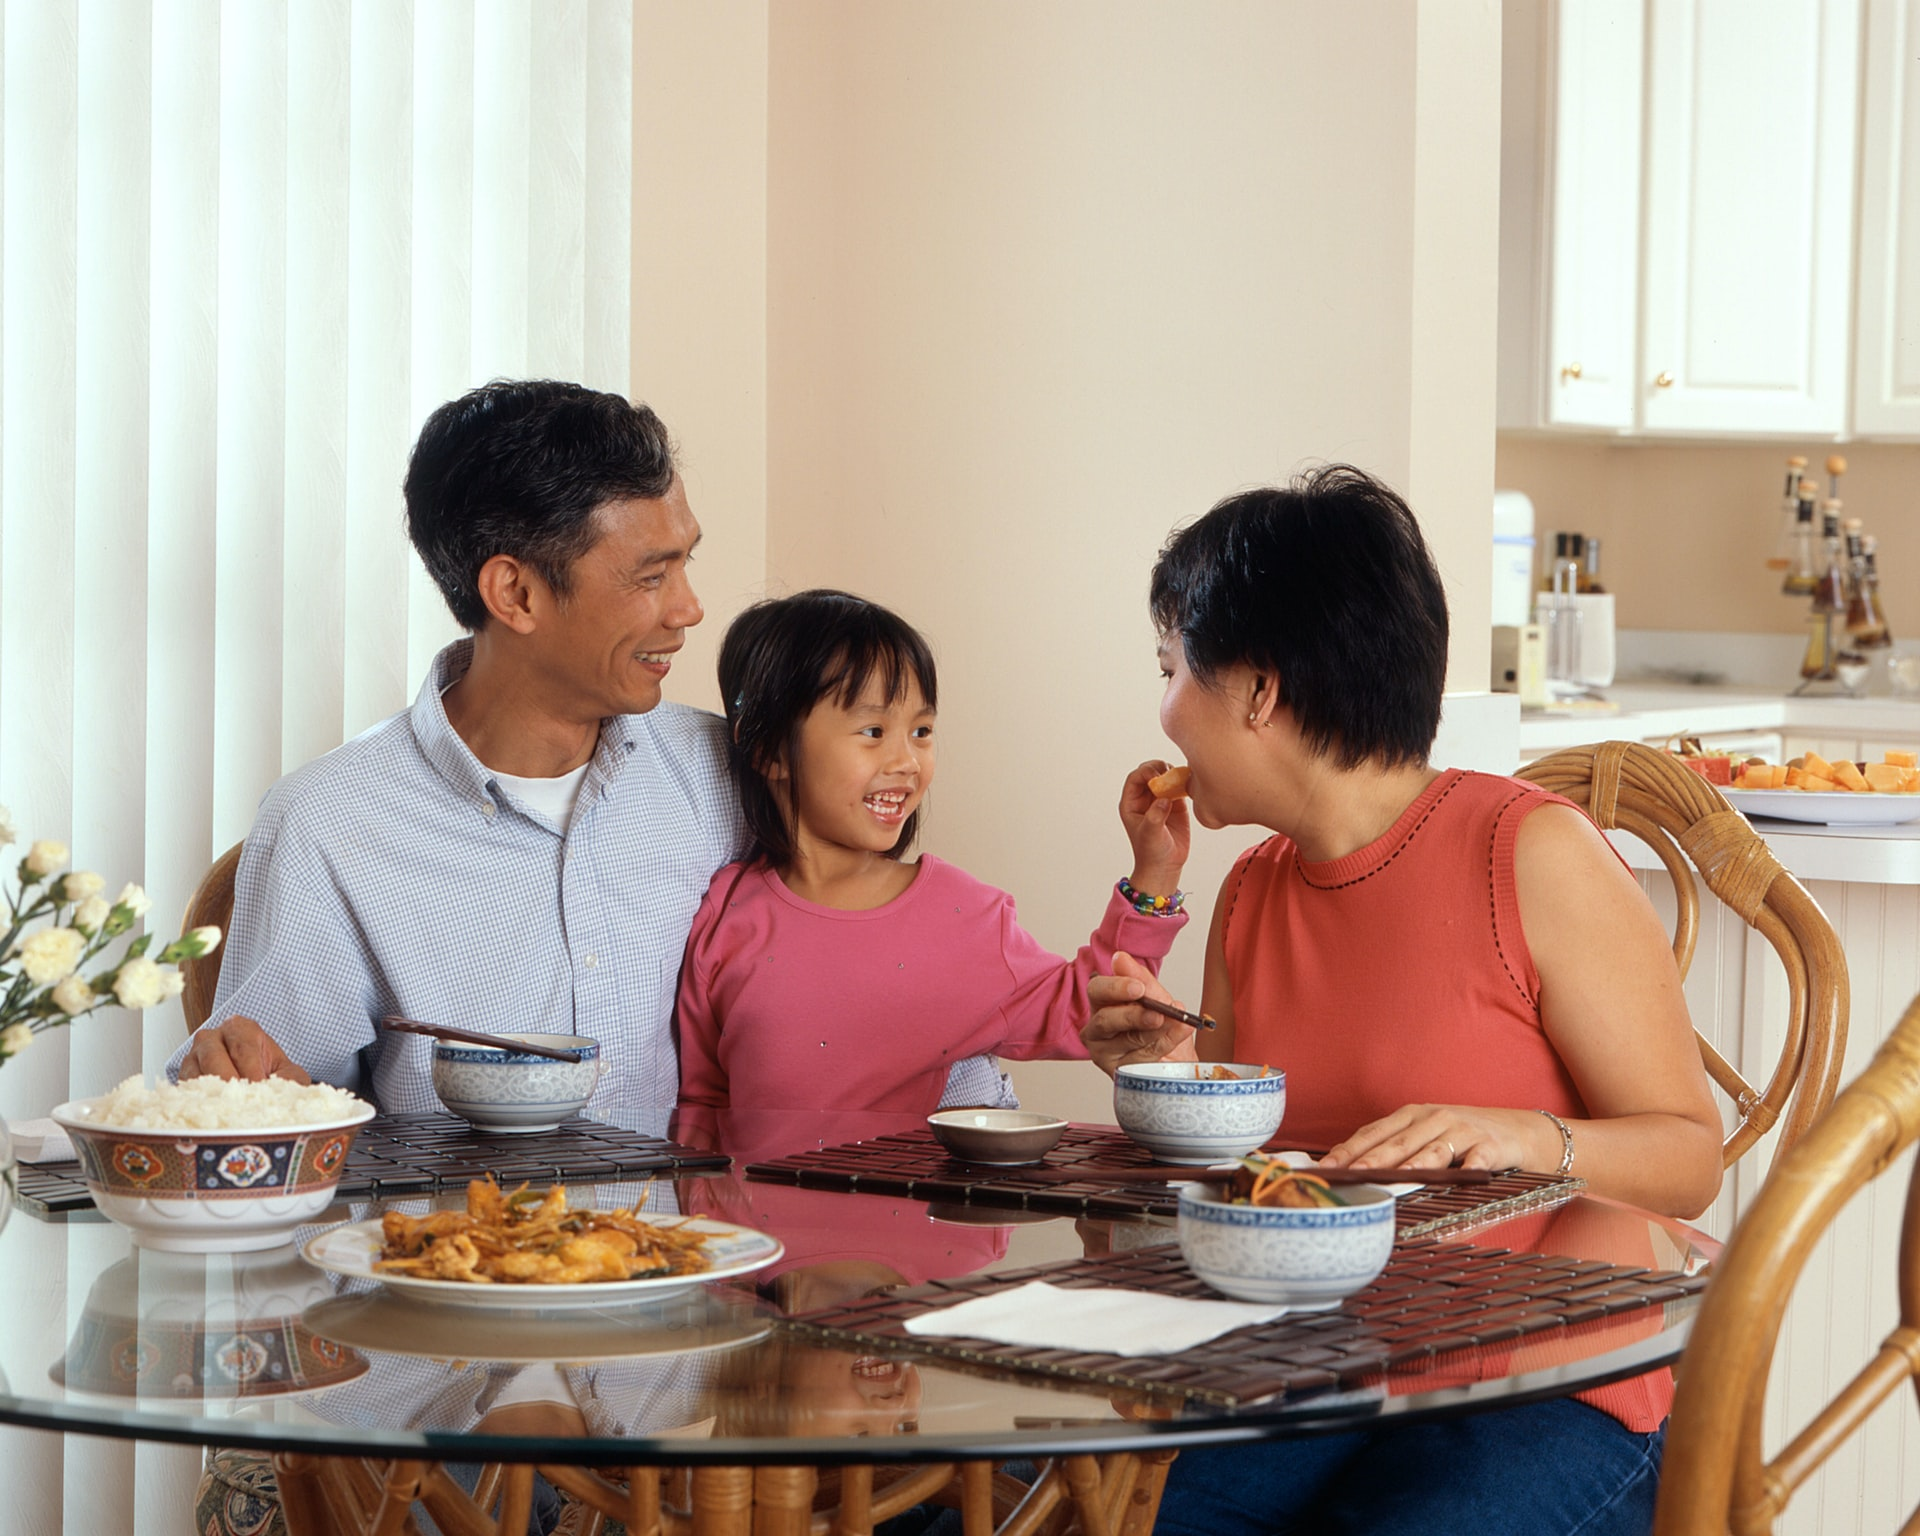 ways to have more fun with your family